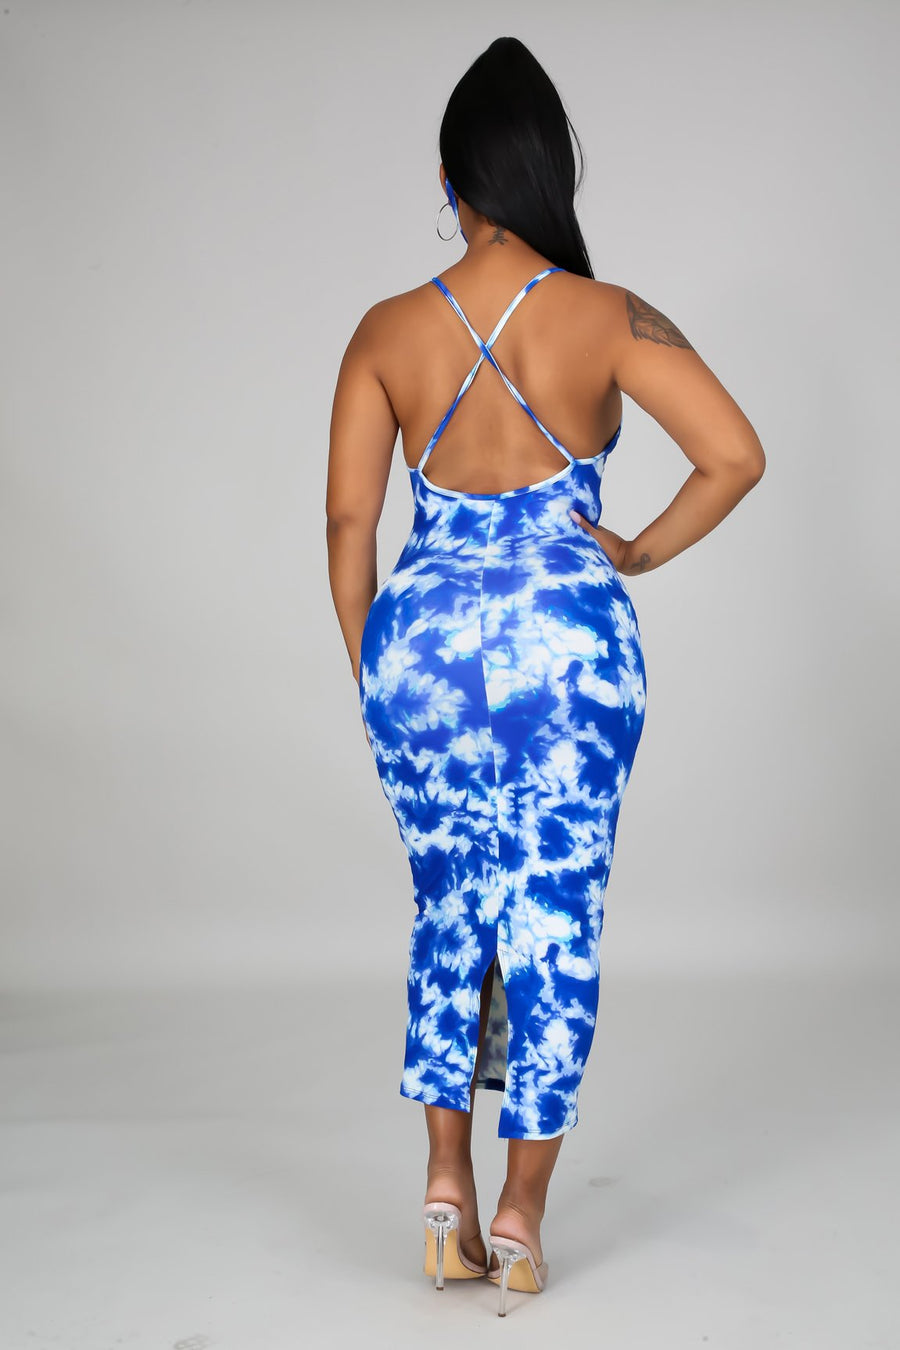 Paint Me Blue Tie Dye Dress Set